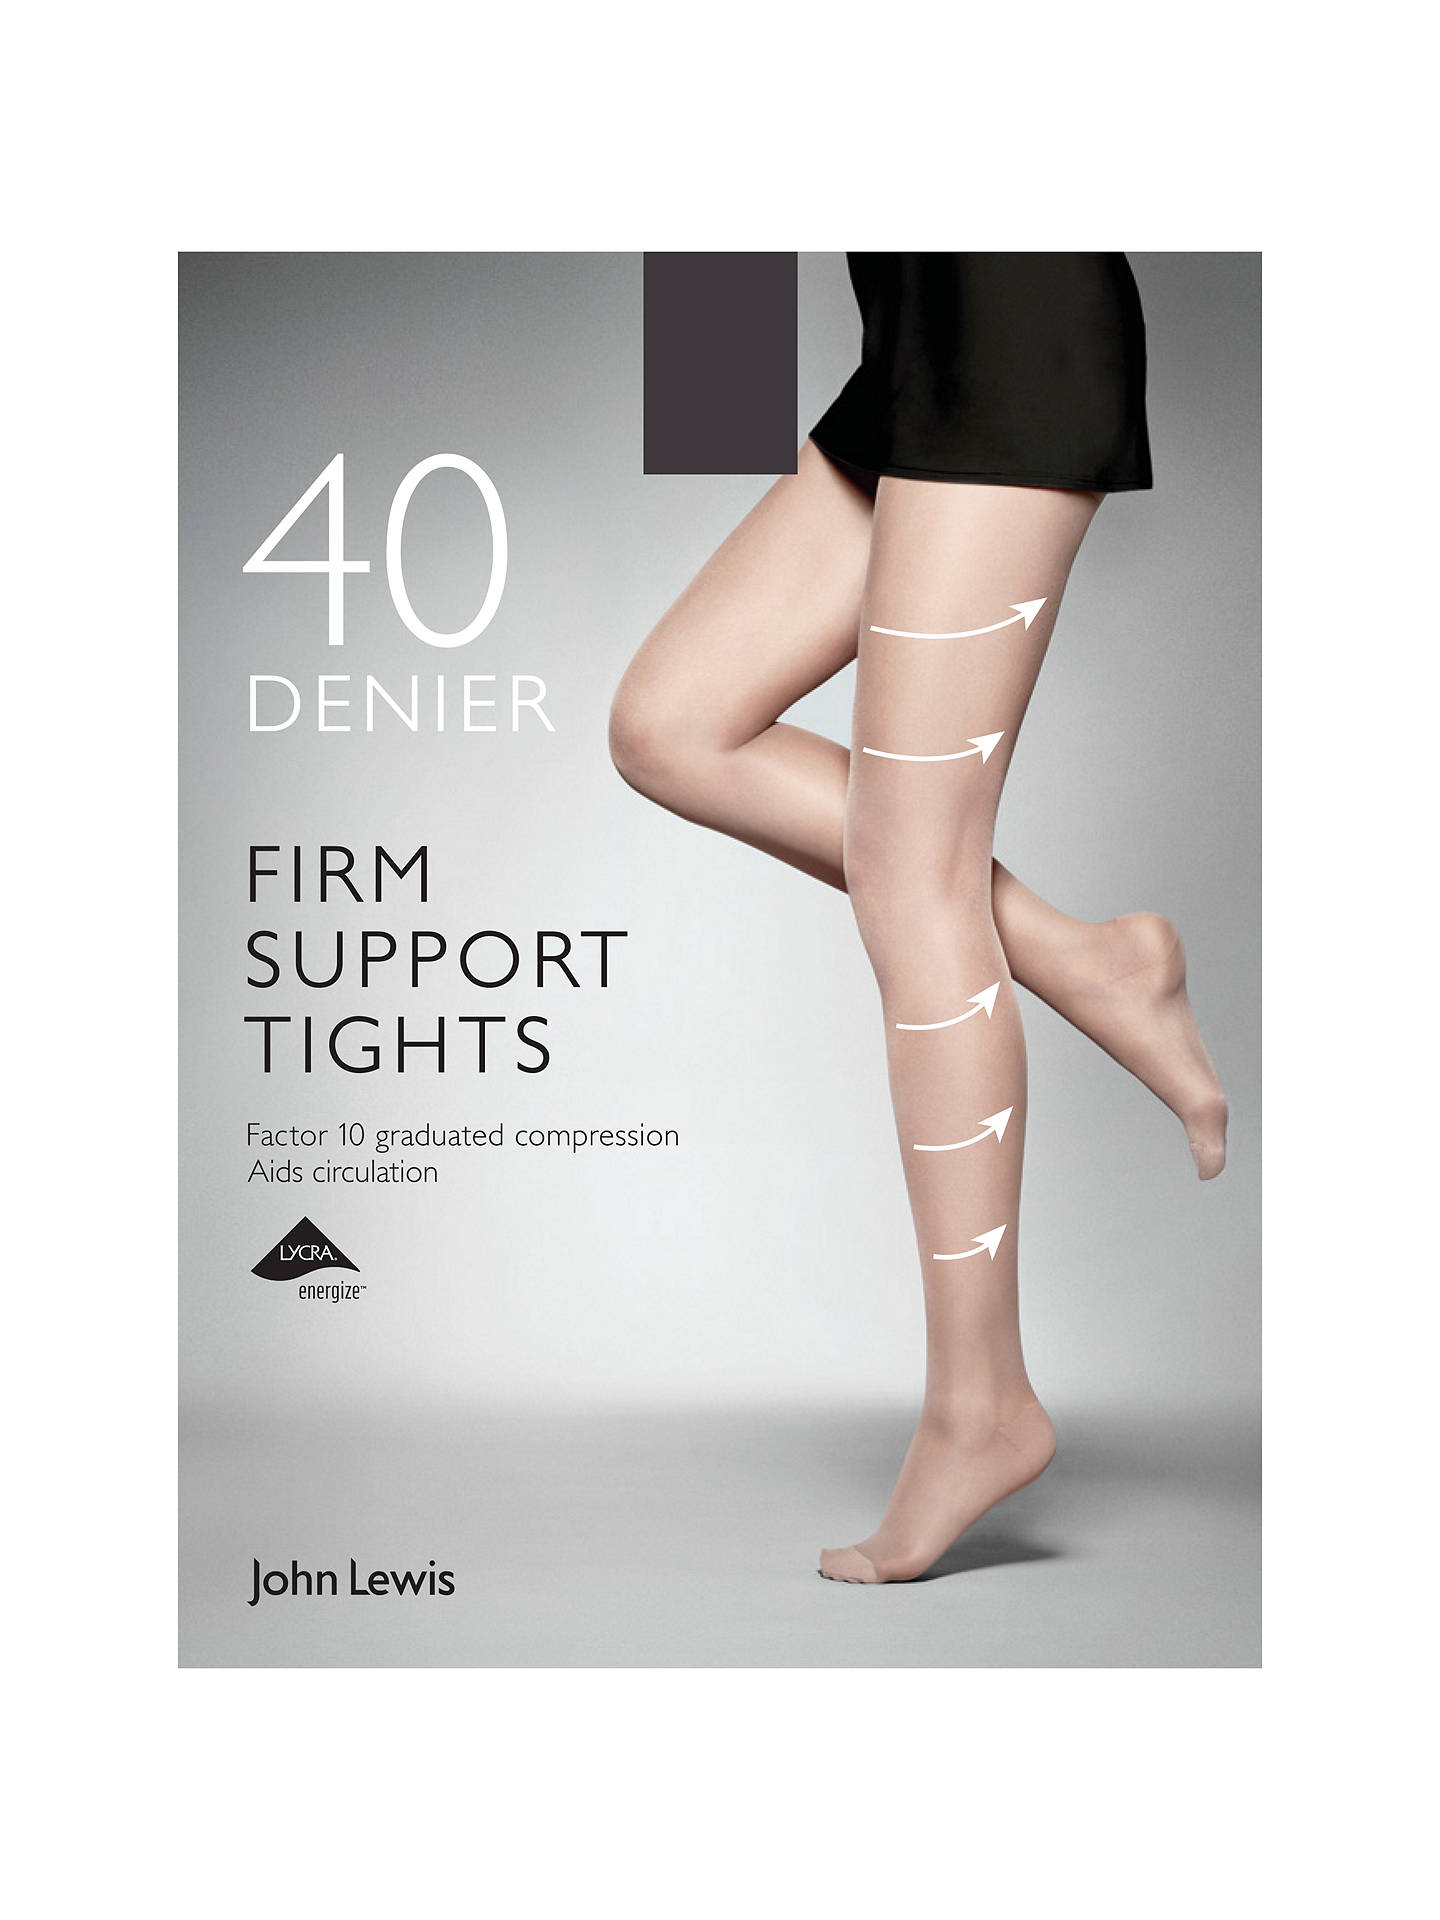 bfa01262bb79 Buy John Lewis & Partners 40 Denier Firm Support Tights, Pack of 1, Black  ...